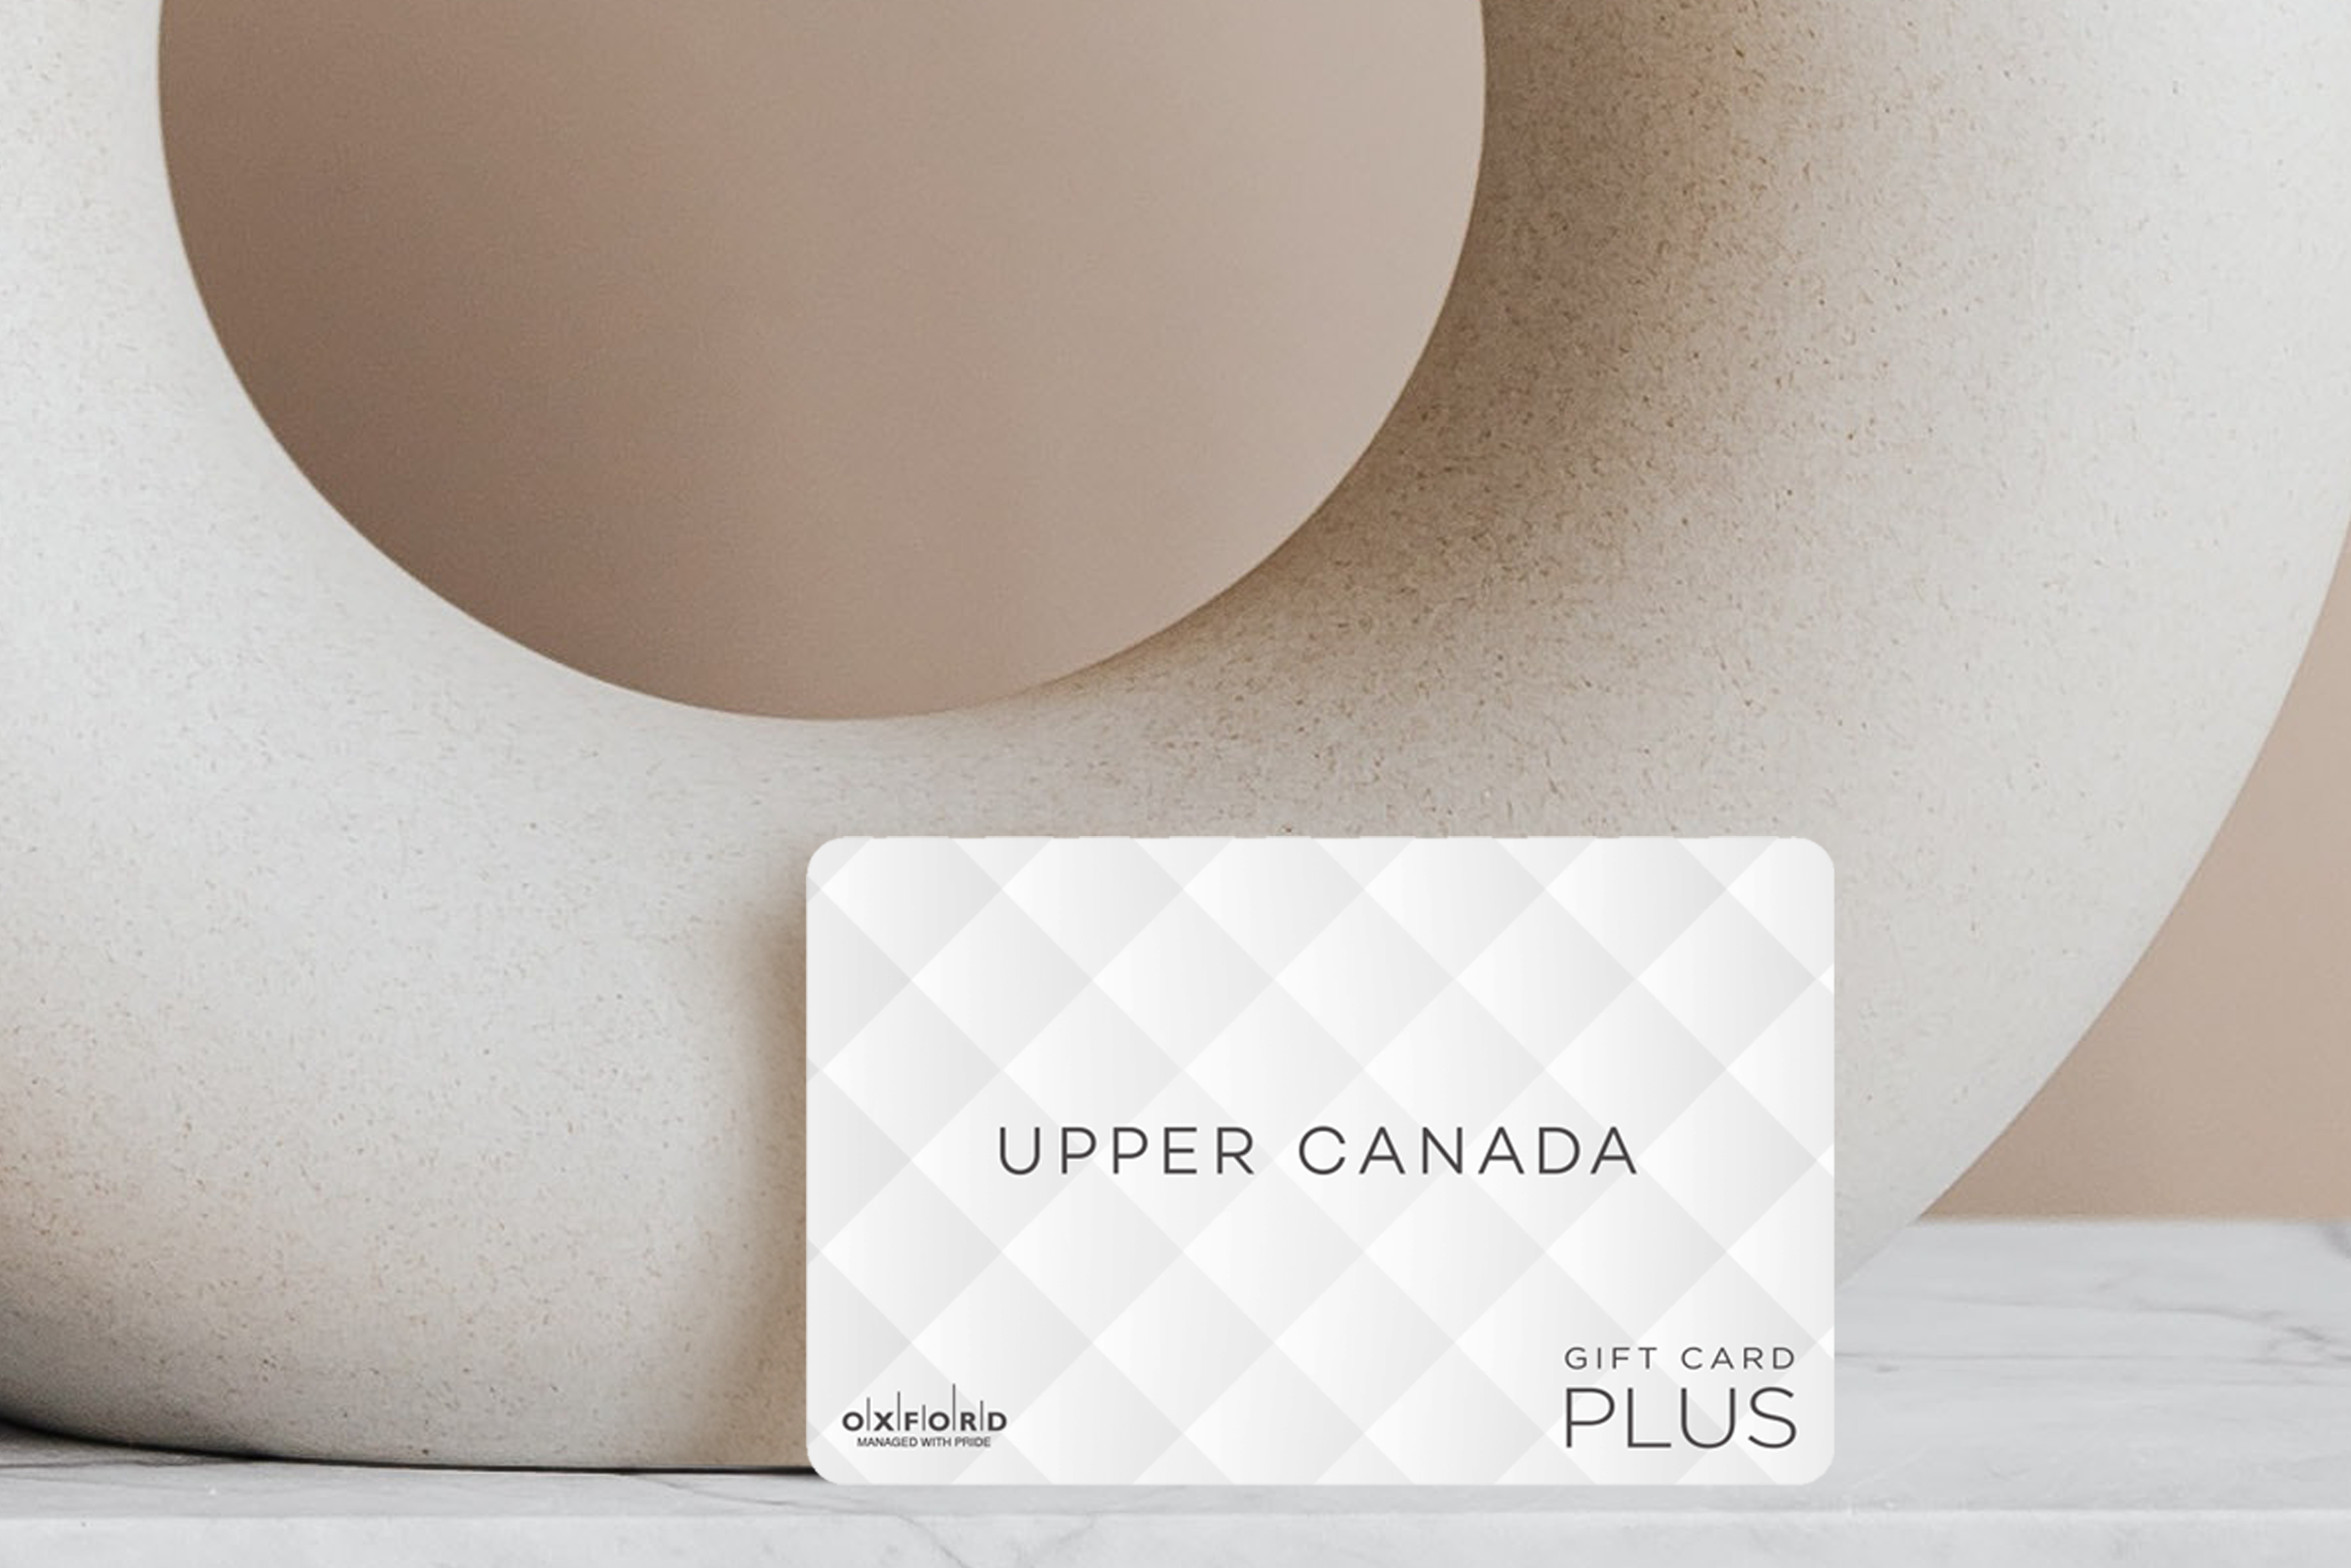 Upper Canada mall white quilted gift card leaning against beige circular vase.